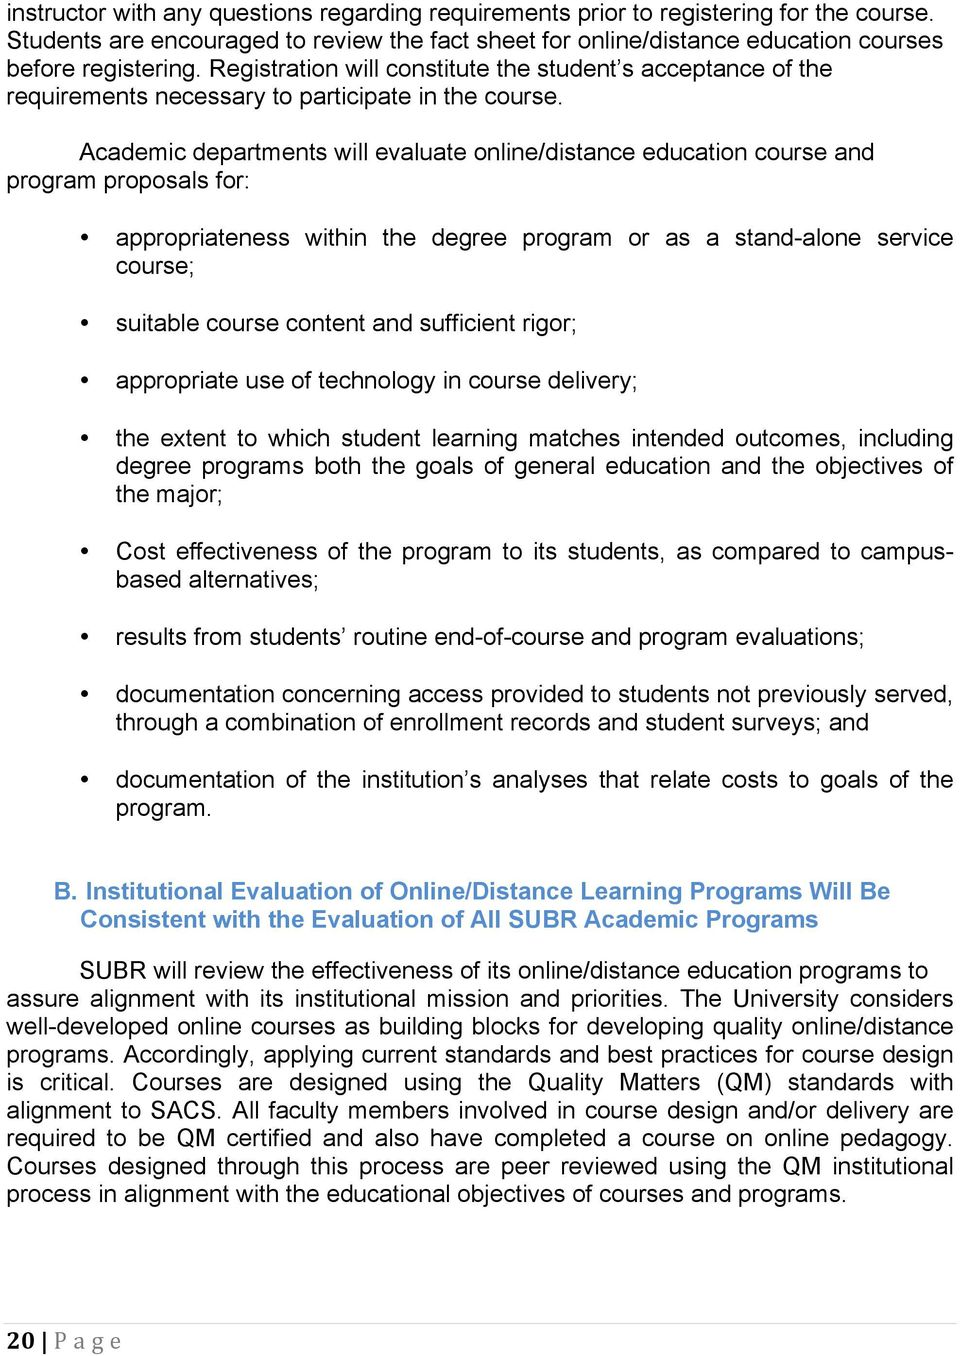 Academic departments will evaluate online/distance education course and program proposals for: appropriateness within the degree program or as a stand-alone service course; suitable course content